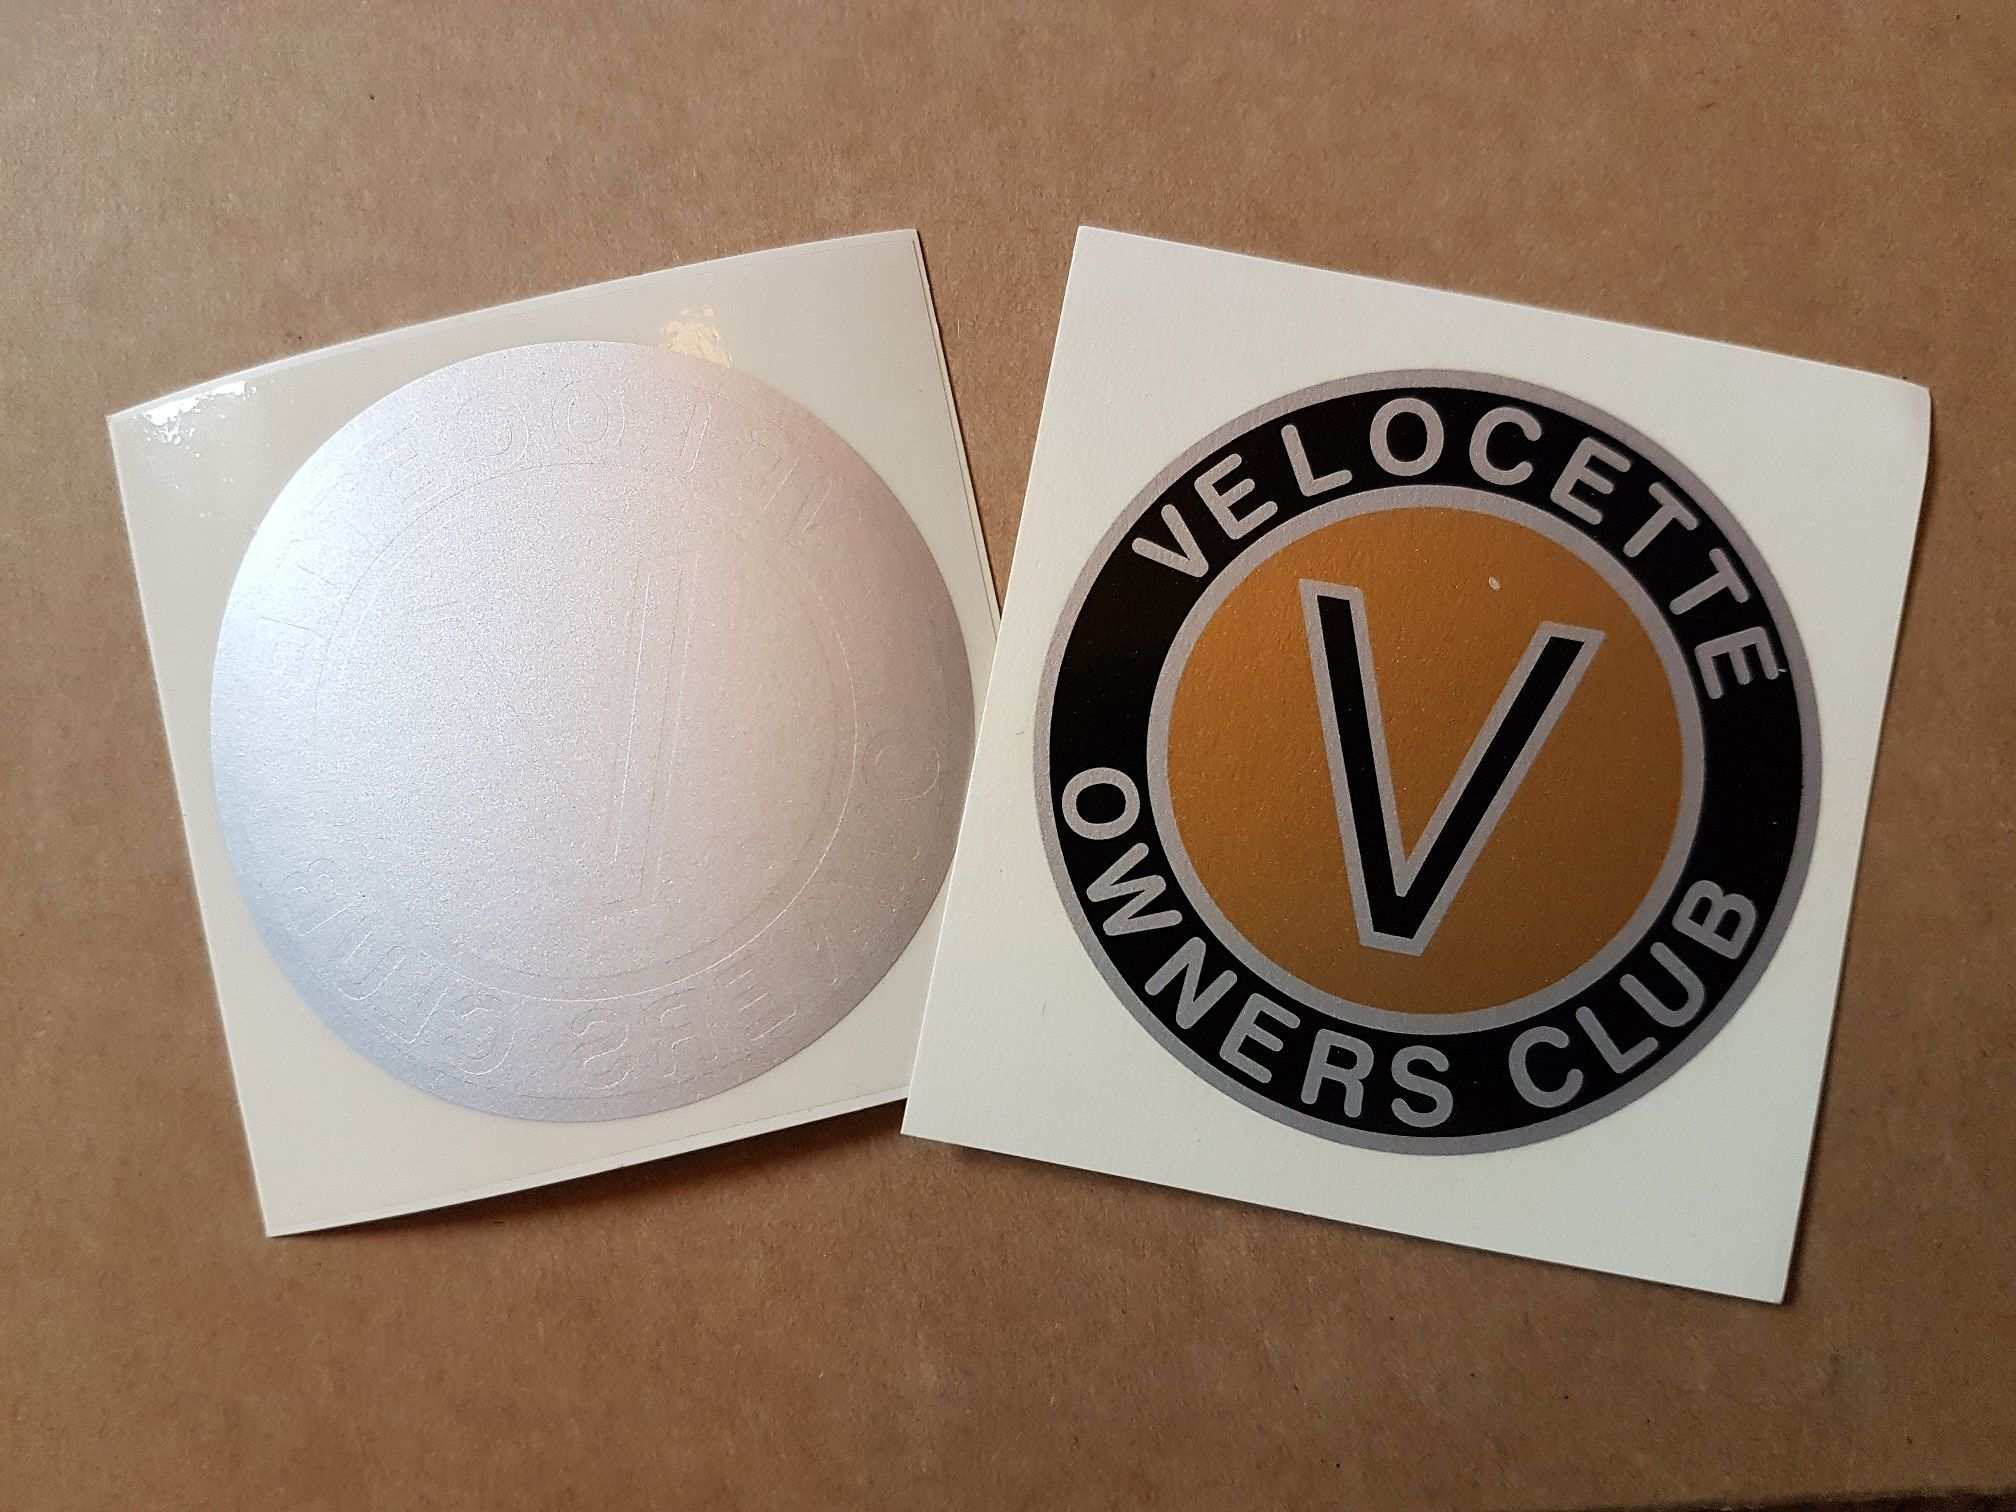 Pack of Velocette stickers